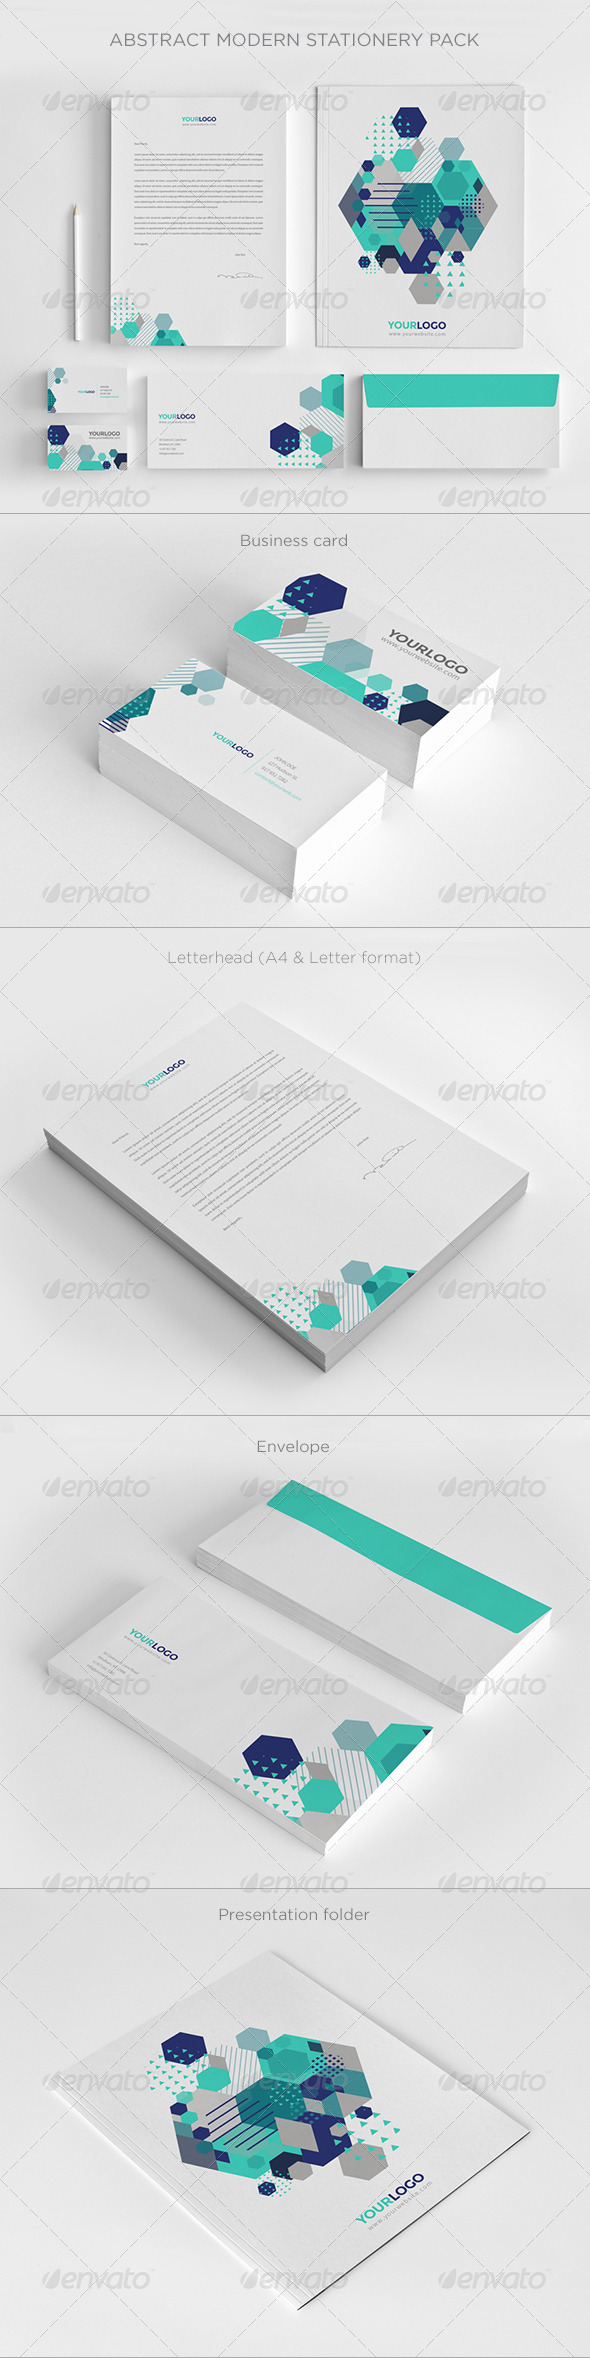 GraphicRiver Abstract Modern Stationery Pack 7239814